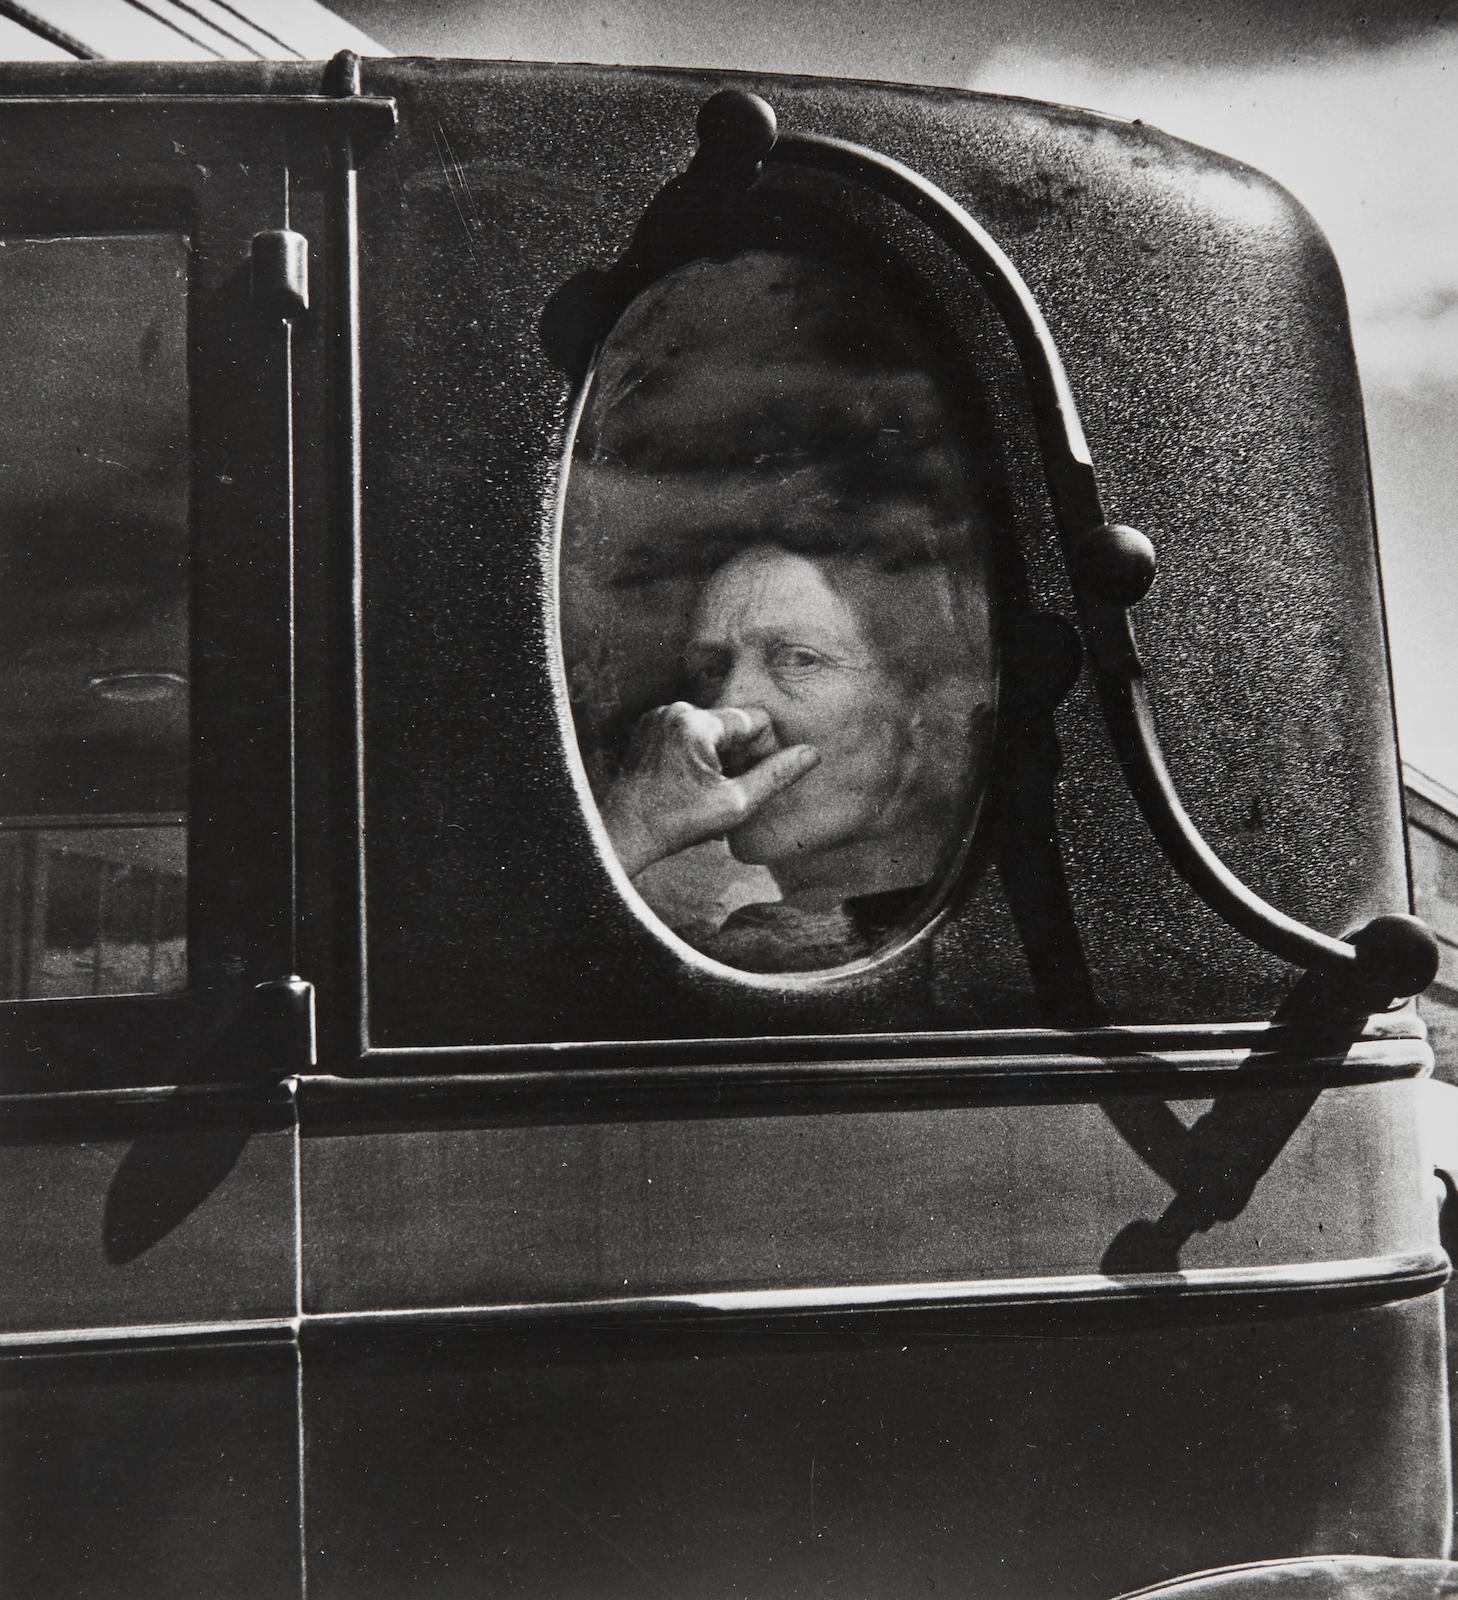 Lange Dorothea Small Girl In Rags Damaged Child Shacktown Elm Grove Oklahoma Funeral Cortege End Of An Era In A Small Valley Town In California 2 Mutualart